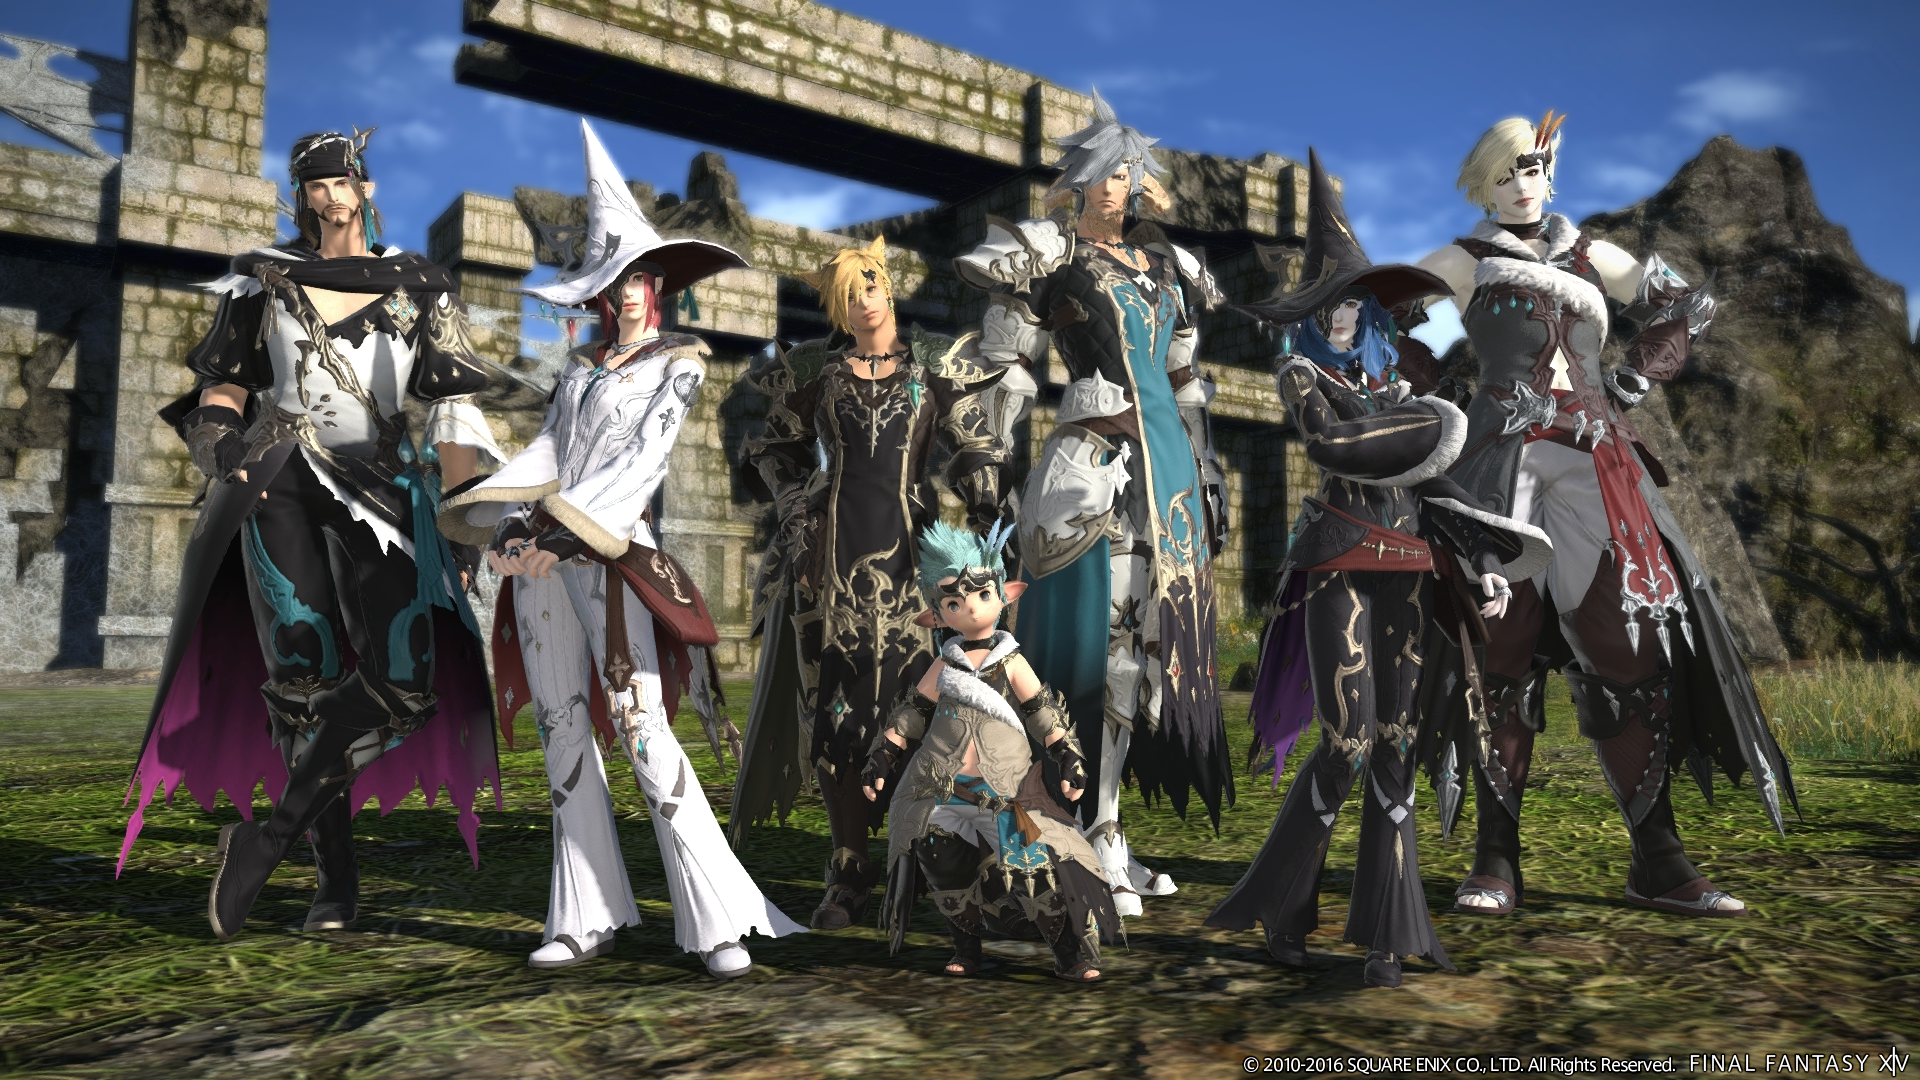 Final Fantasy XIV Patch 3 3 Brings New Emotes, Hairstyles, Mounts